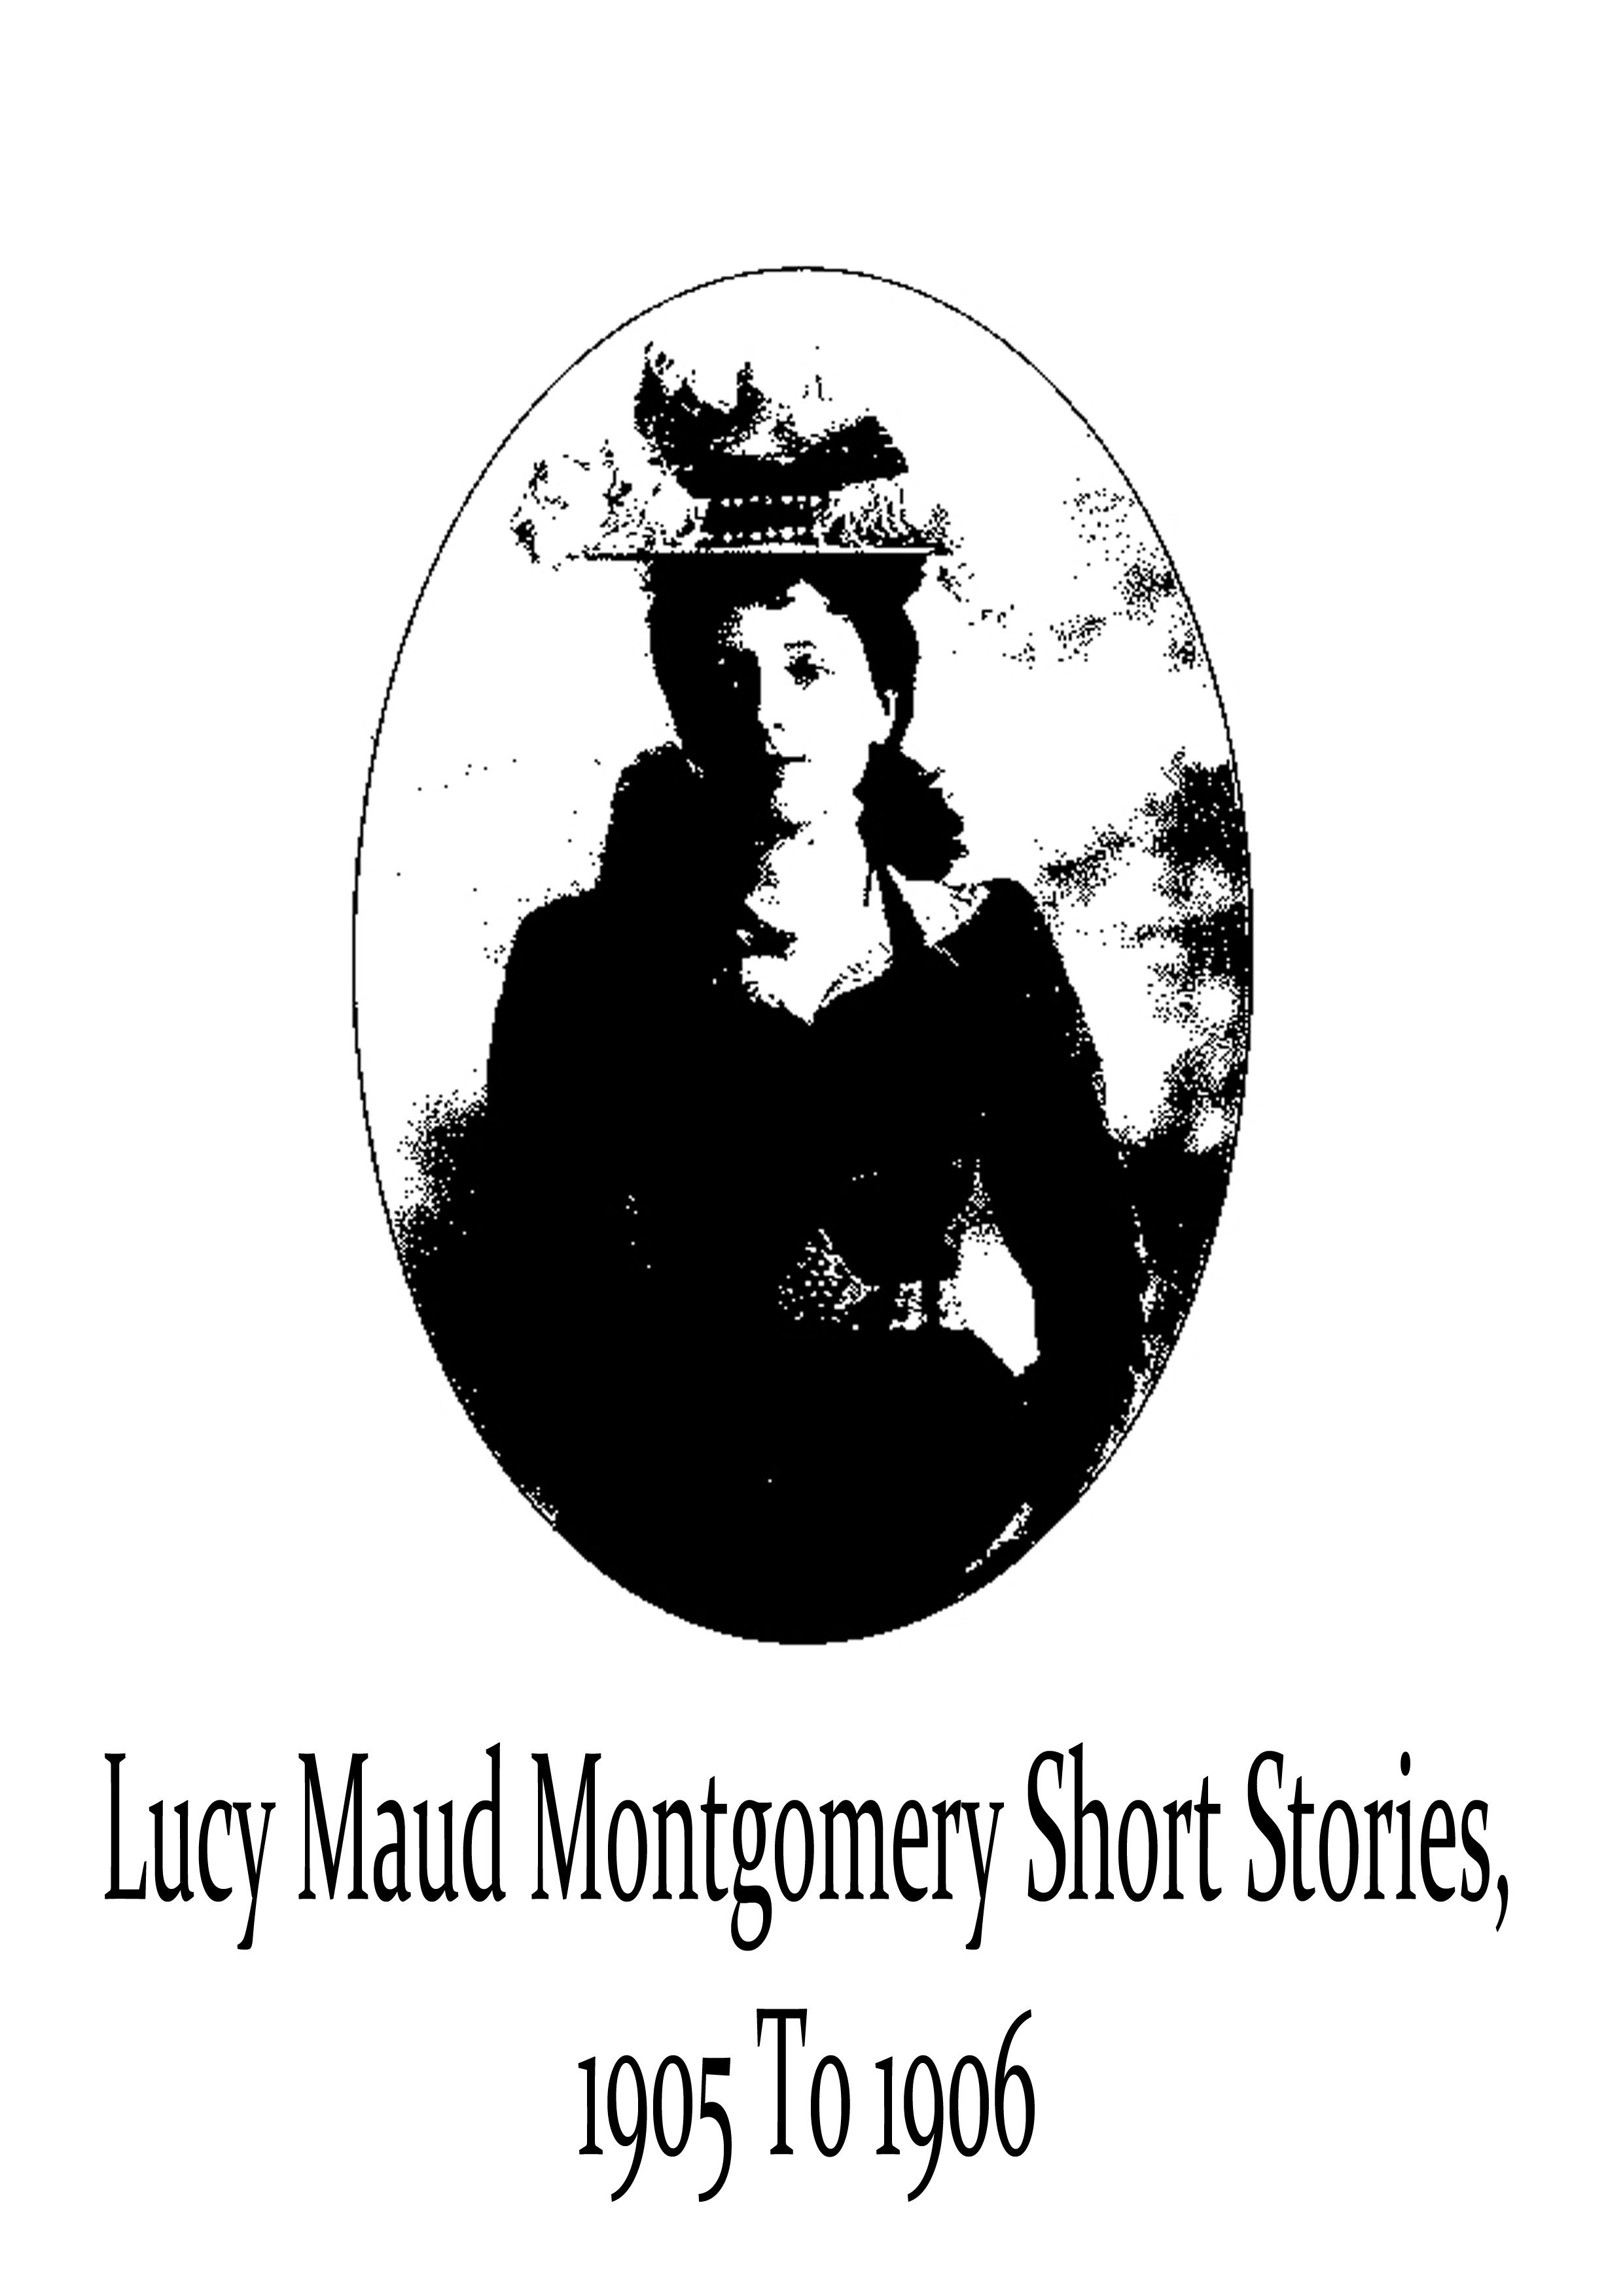 Lucy Maud Montgomery - Lucy Maud Montgomery Short Stories, 1905 To 1906